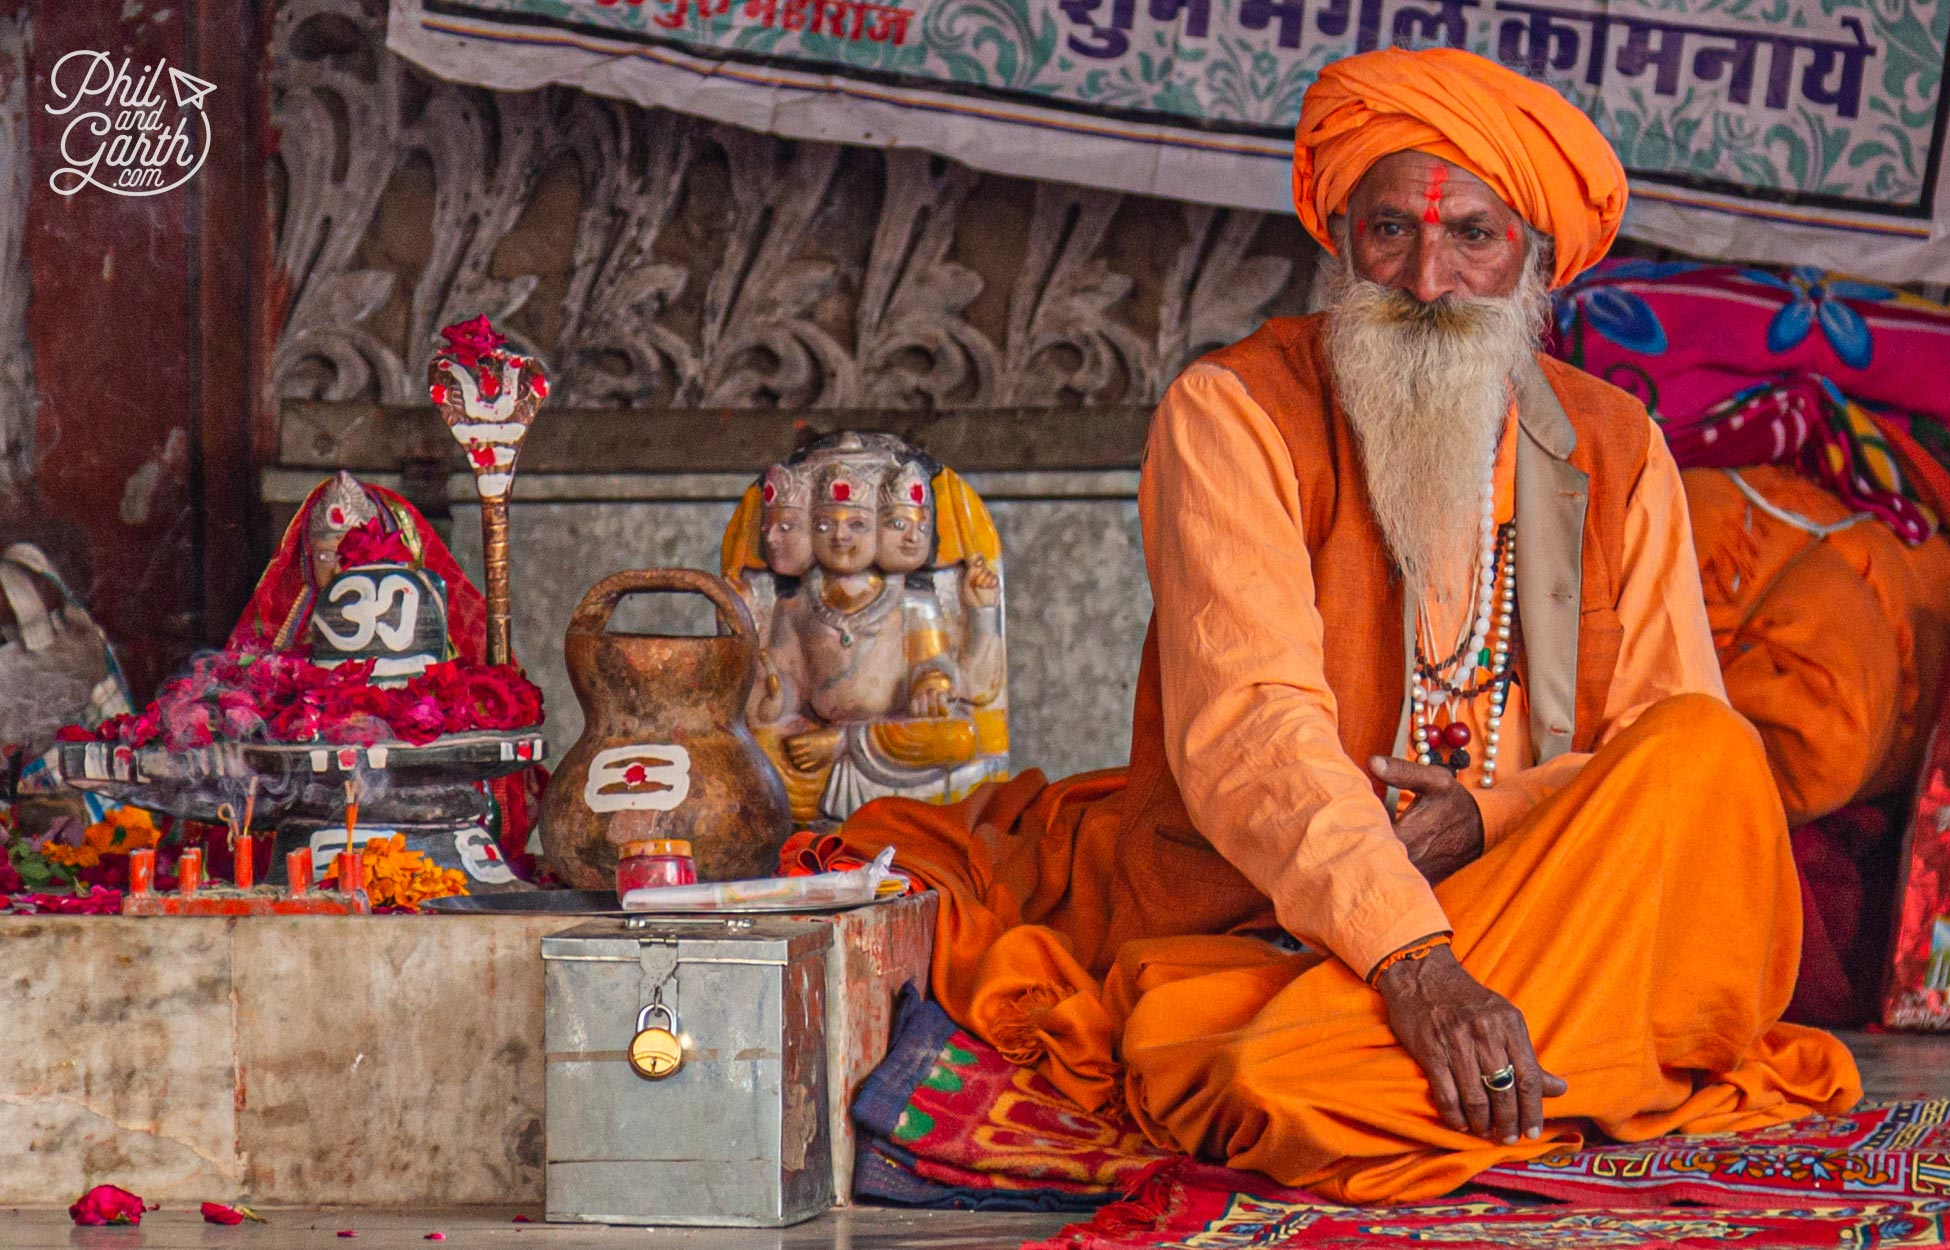 There are many sadhus in Puskar they are holy people who dedicate their lives to Hinduism